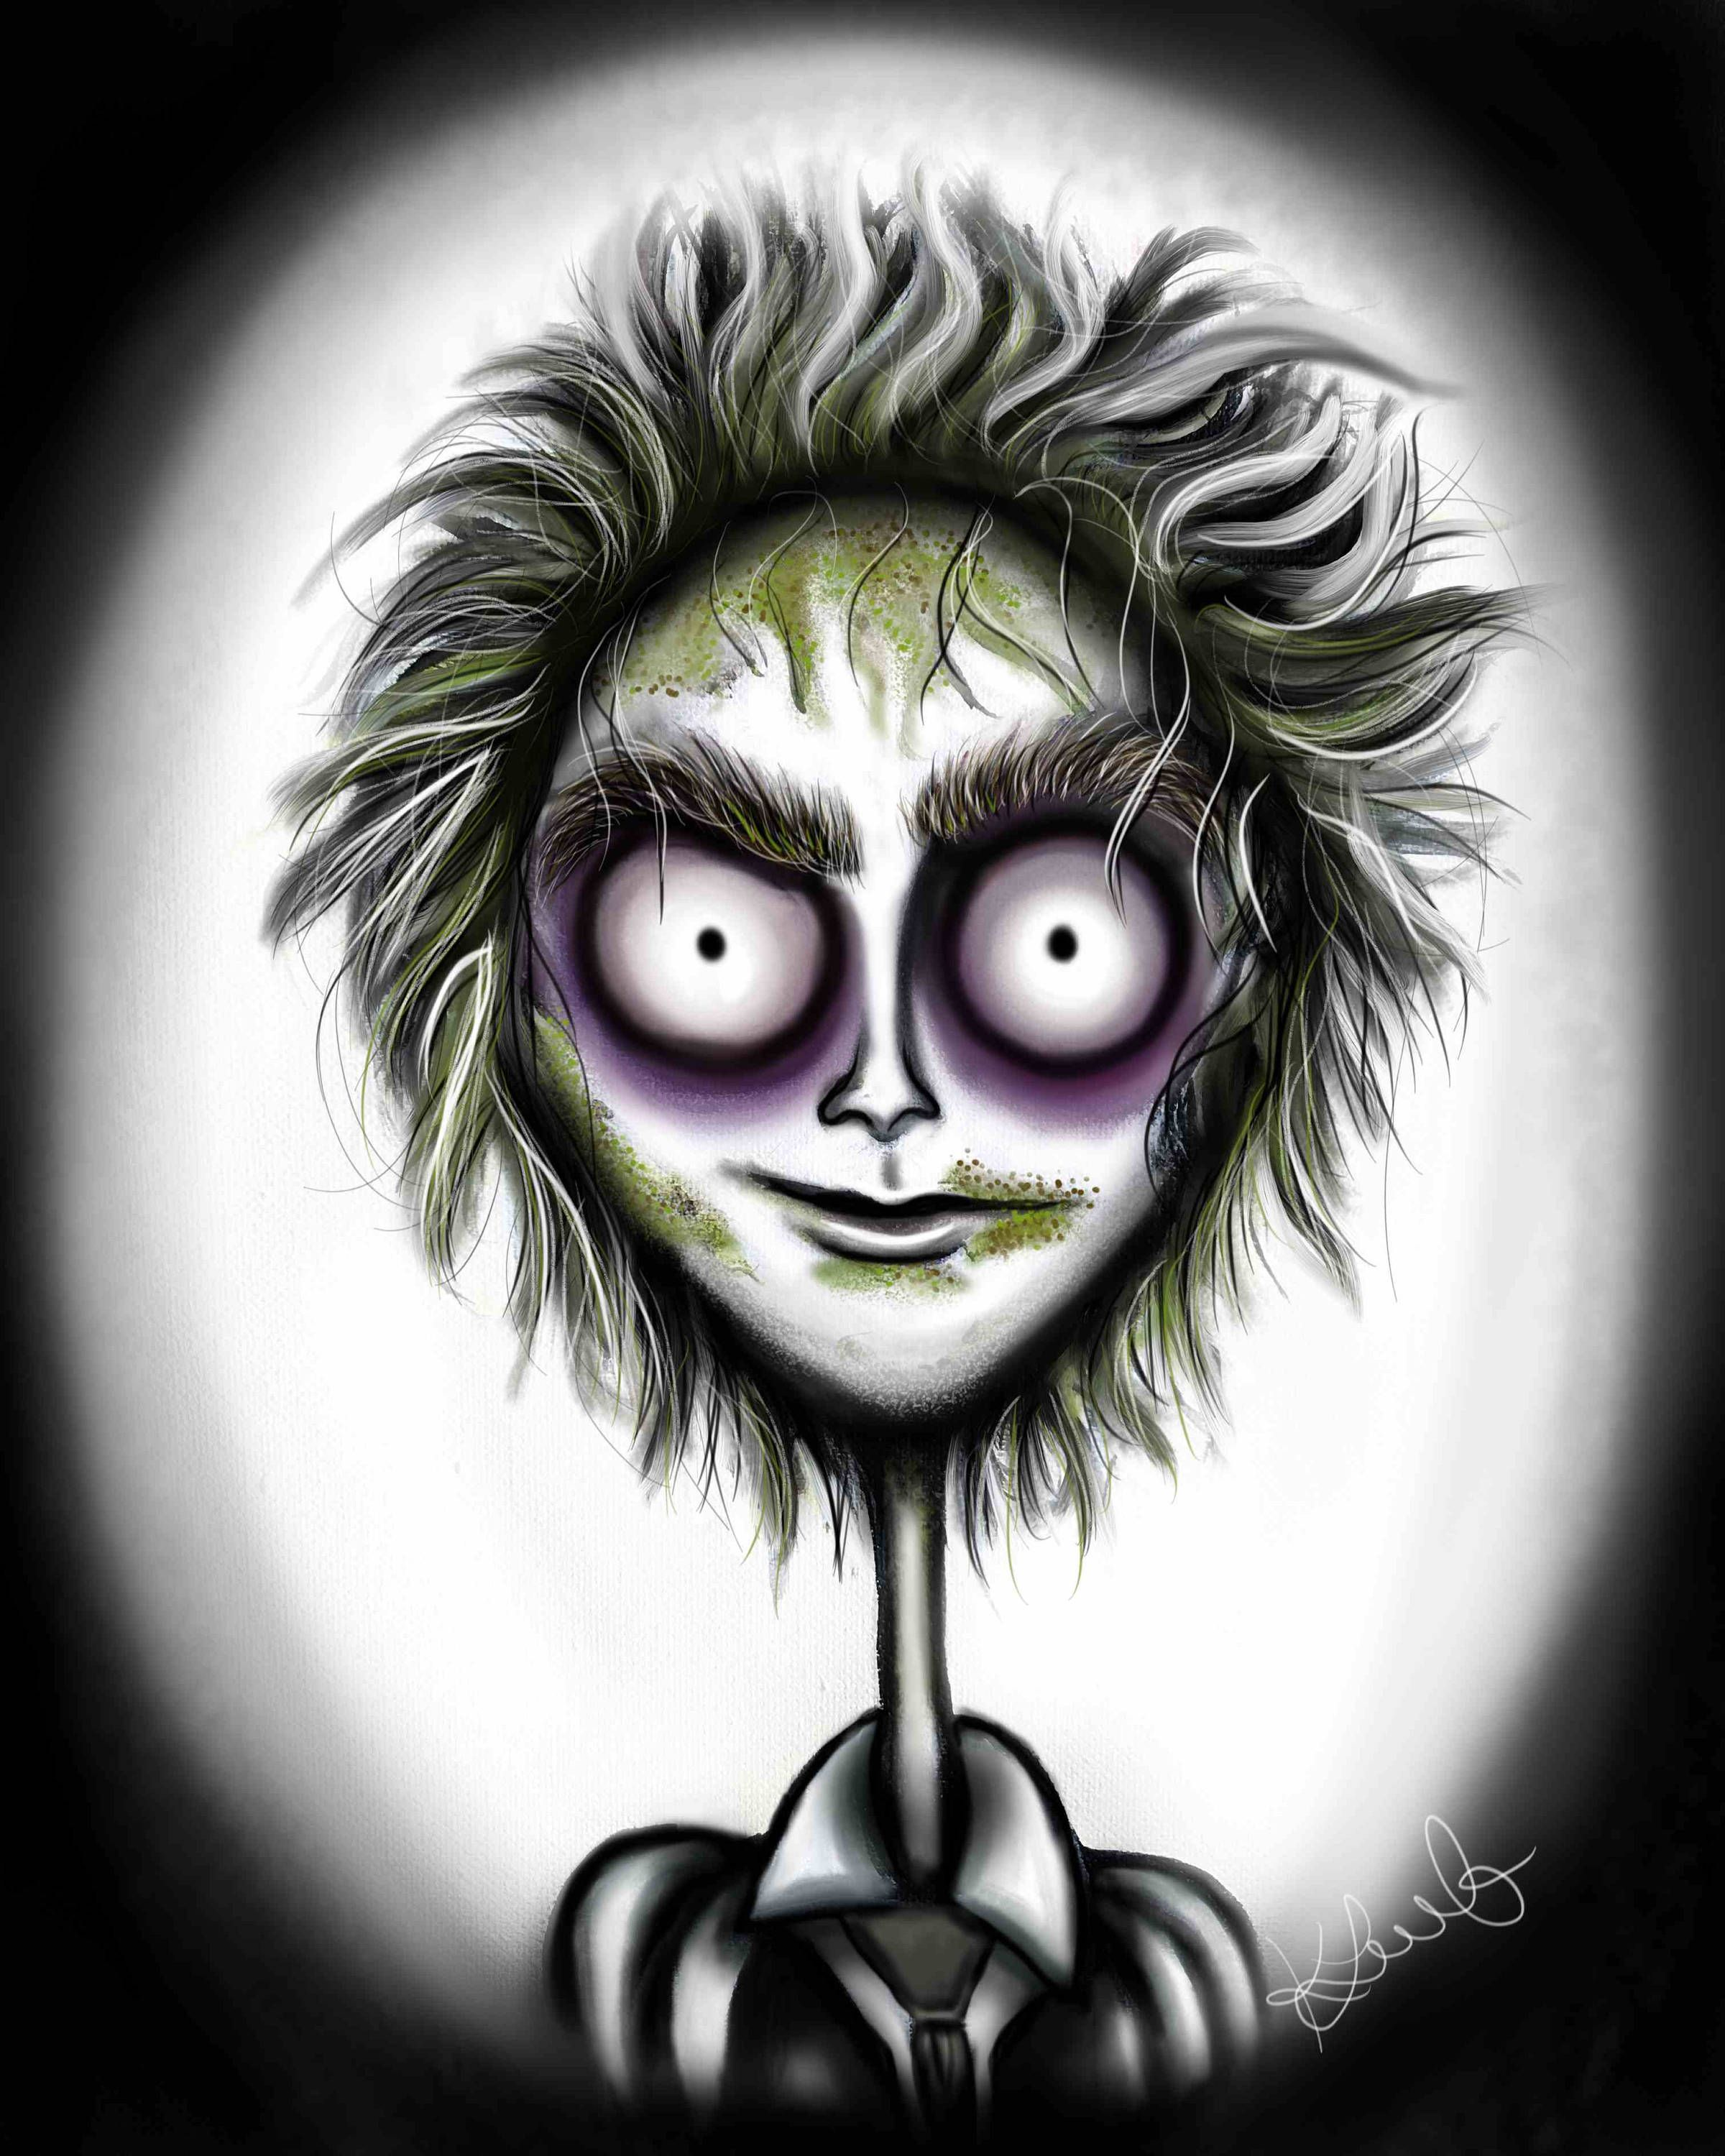 Beetlejuice Tim Burton Print 8x10 Wall Art Digital Etsy Tim Burton Art Style Tim Burton Drawings Tim Burton Art